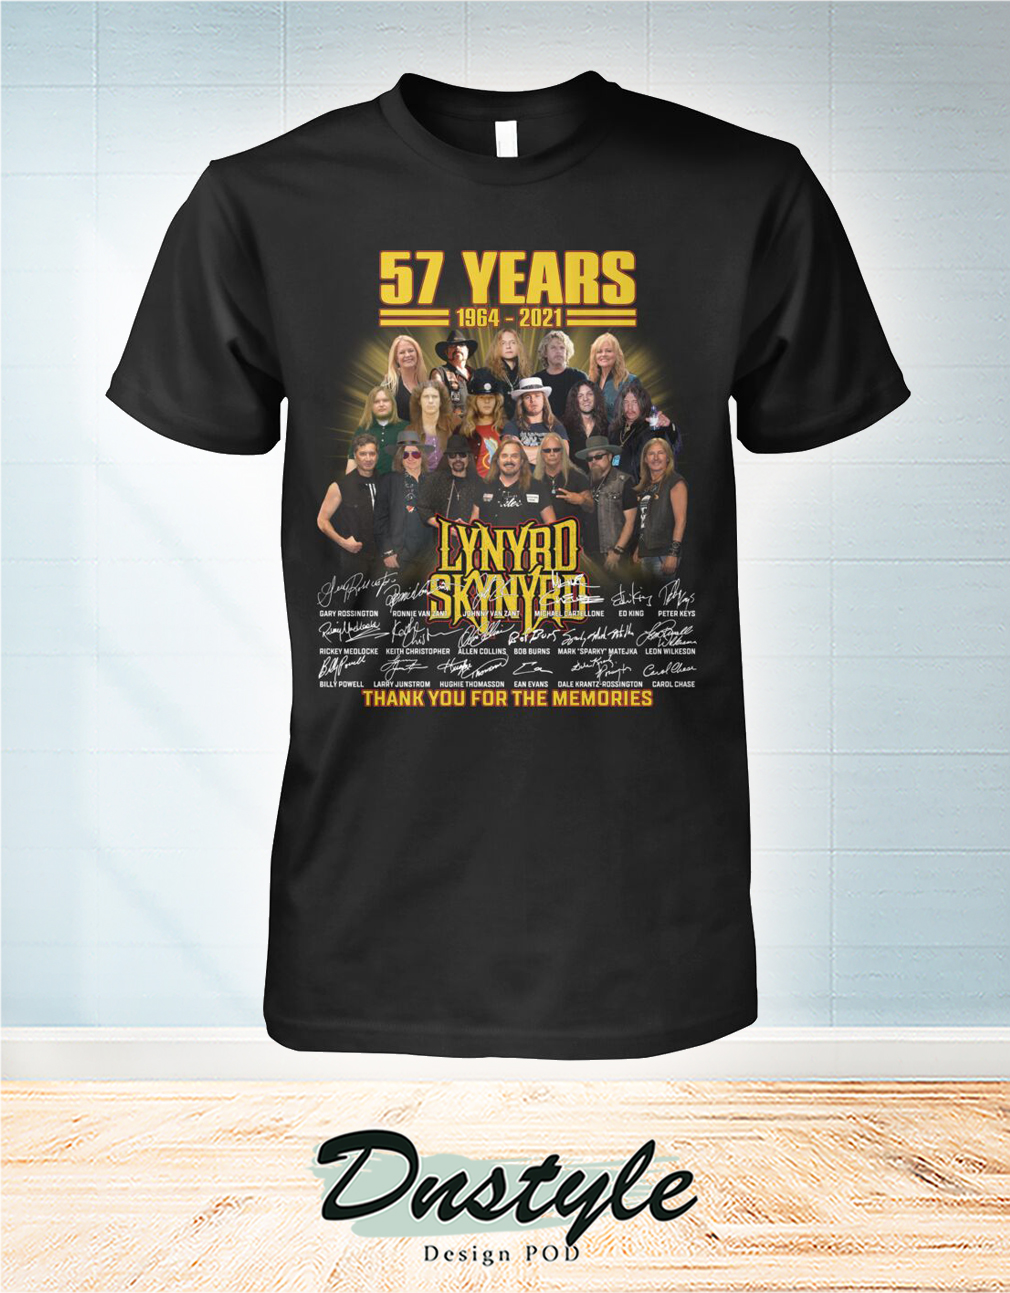 Lynyrd Skynyrd 57 years signature thank you for the memories shirt